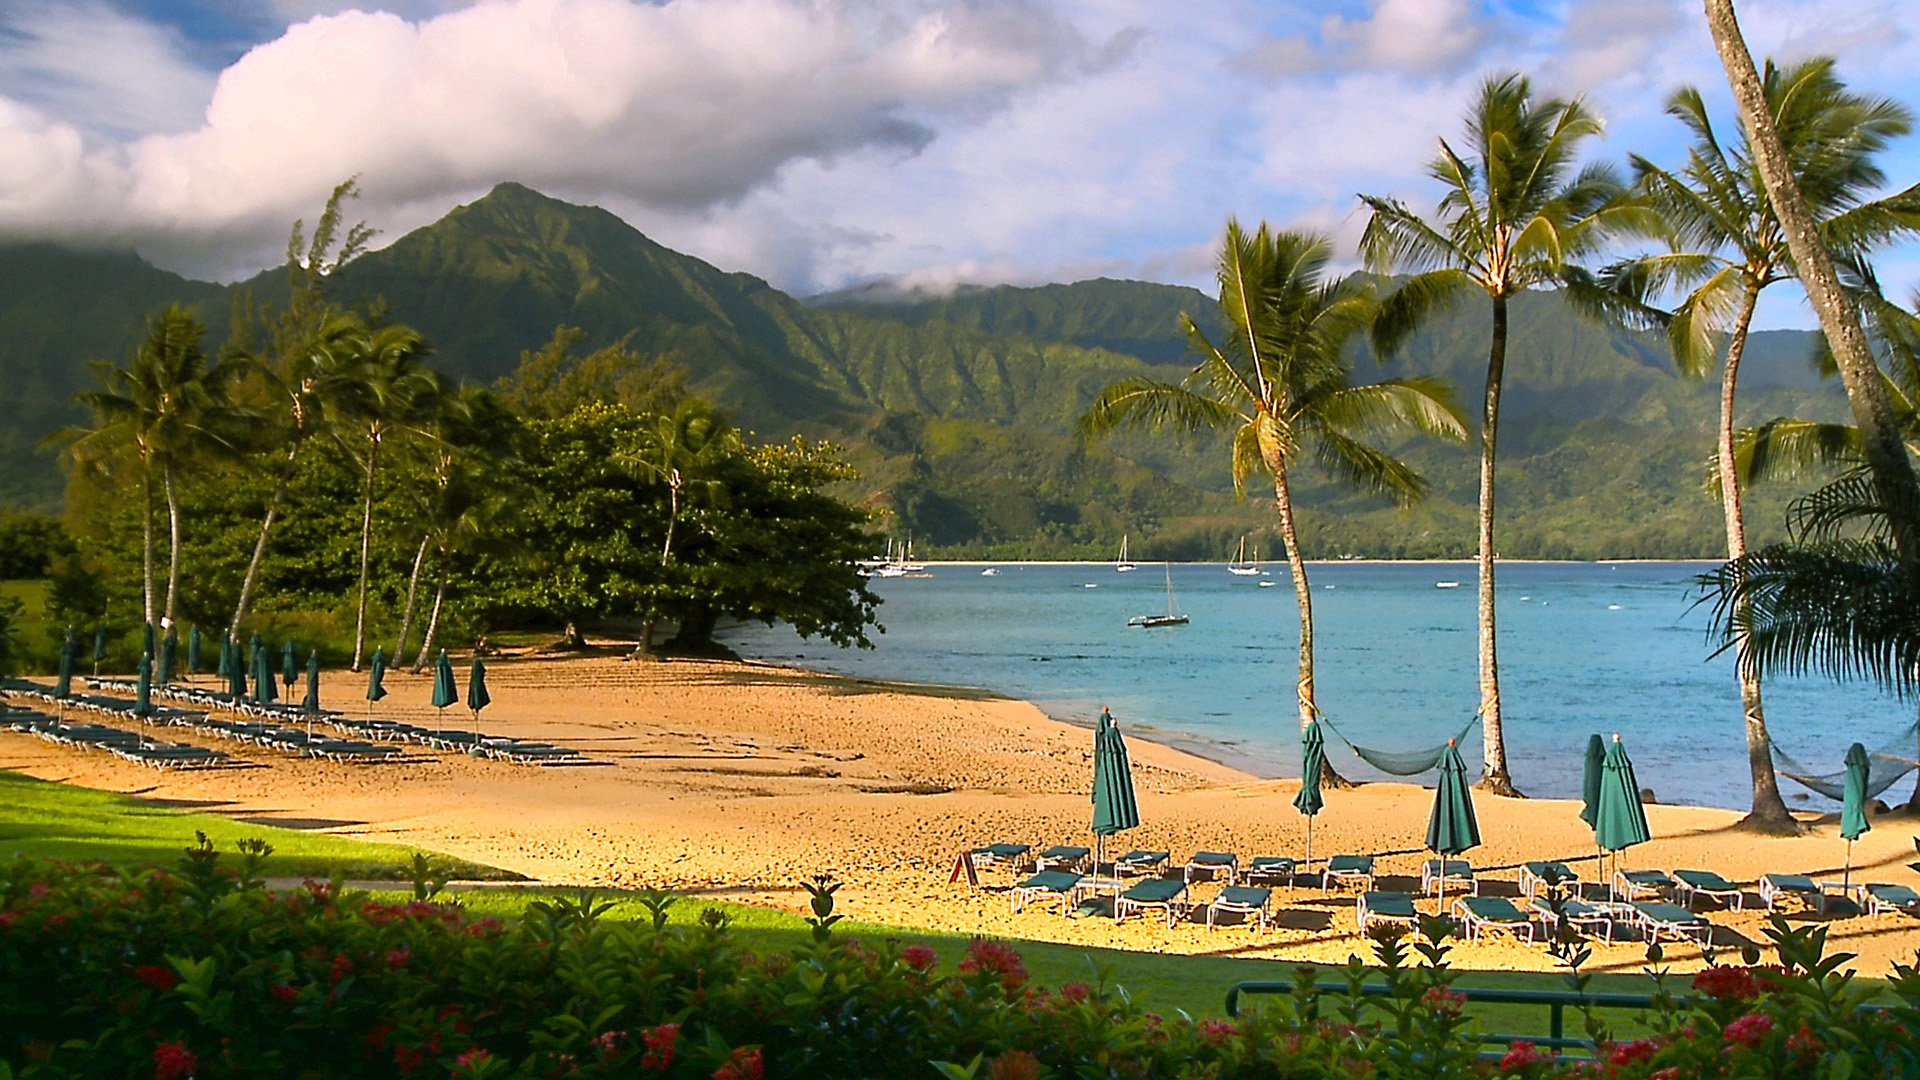 10 New Hawaii Beach Pictures Wallpapers Full Hd 1920 1080: SEE The Most Beautiful Hawaii Beaches Photos From Our New